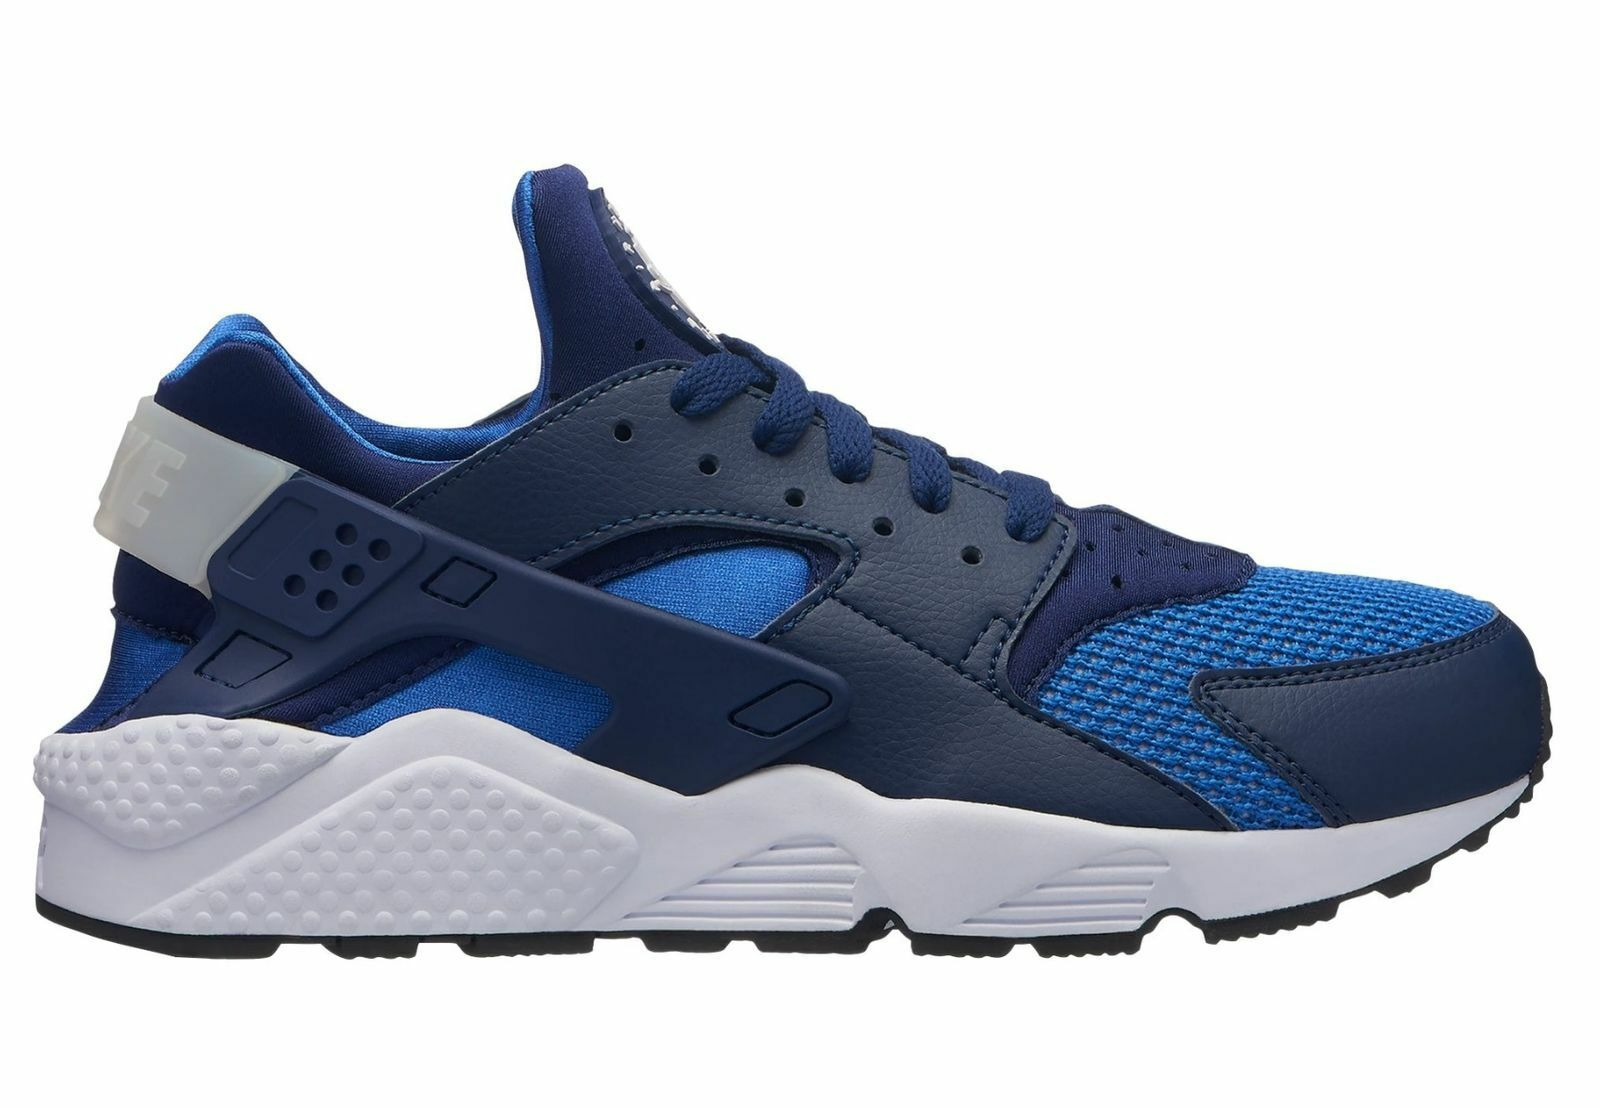 New Nike Men's Air Huarache Running Shoes (318429-421) Blue Void//White/Gm Royal